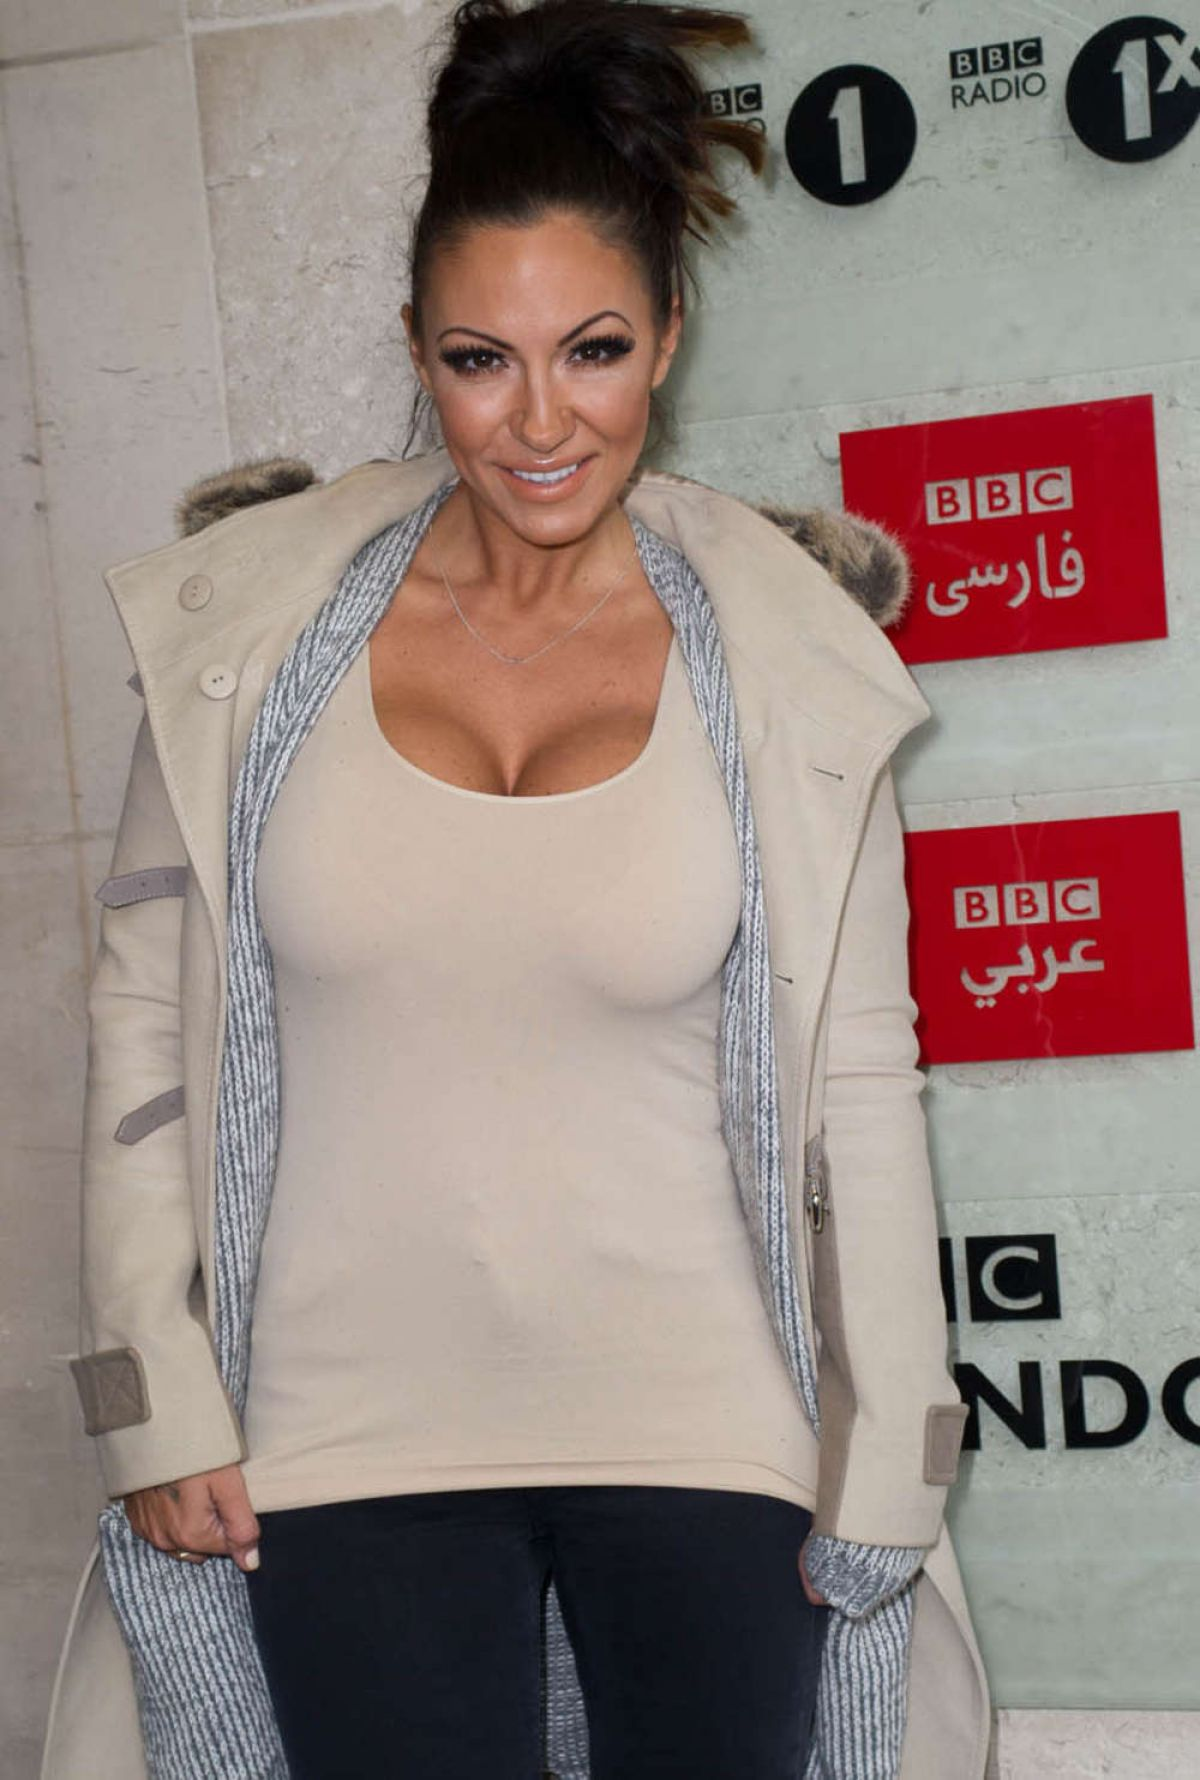 JODIE MARSH Leaves BBC Studios in London